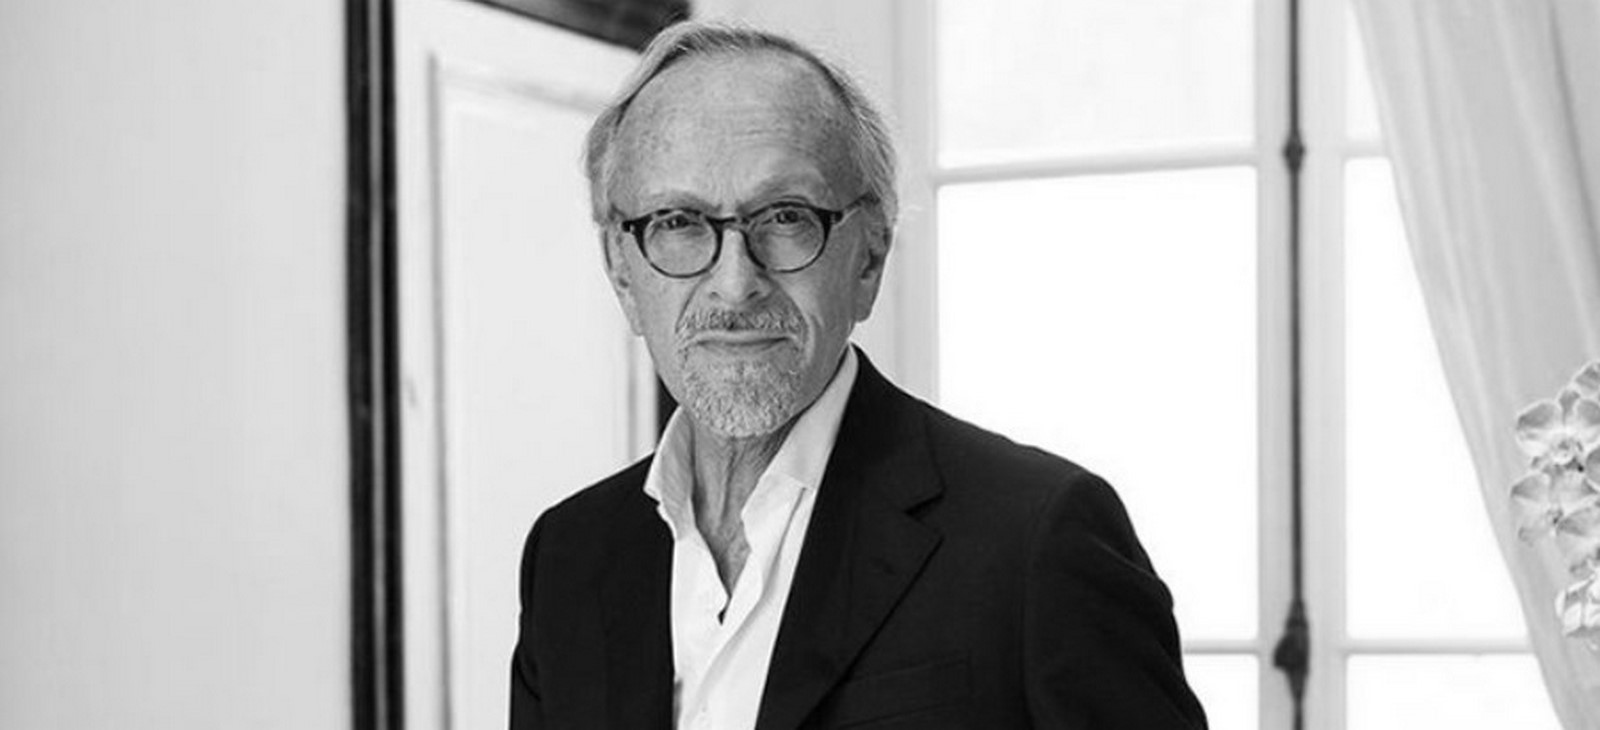 Faces of the Gone- Remembering 20 Creative minds that were laid to rest in 2020- Part II-Christian Liaigre - French Interior Designer - Sheet1